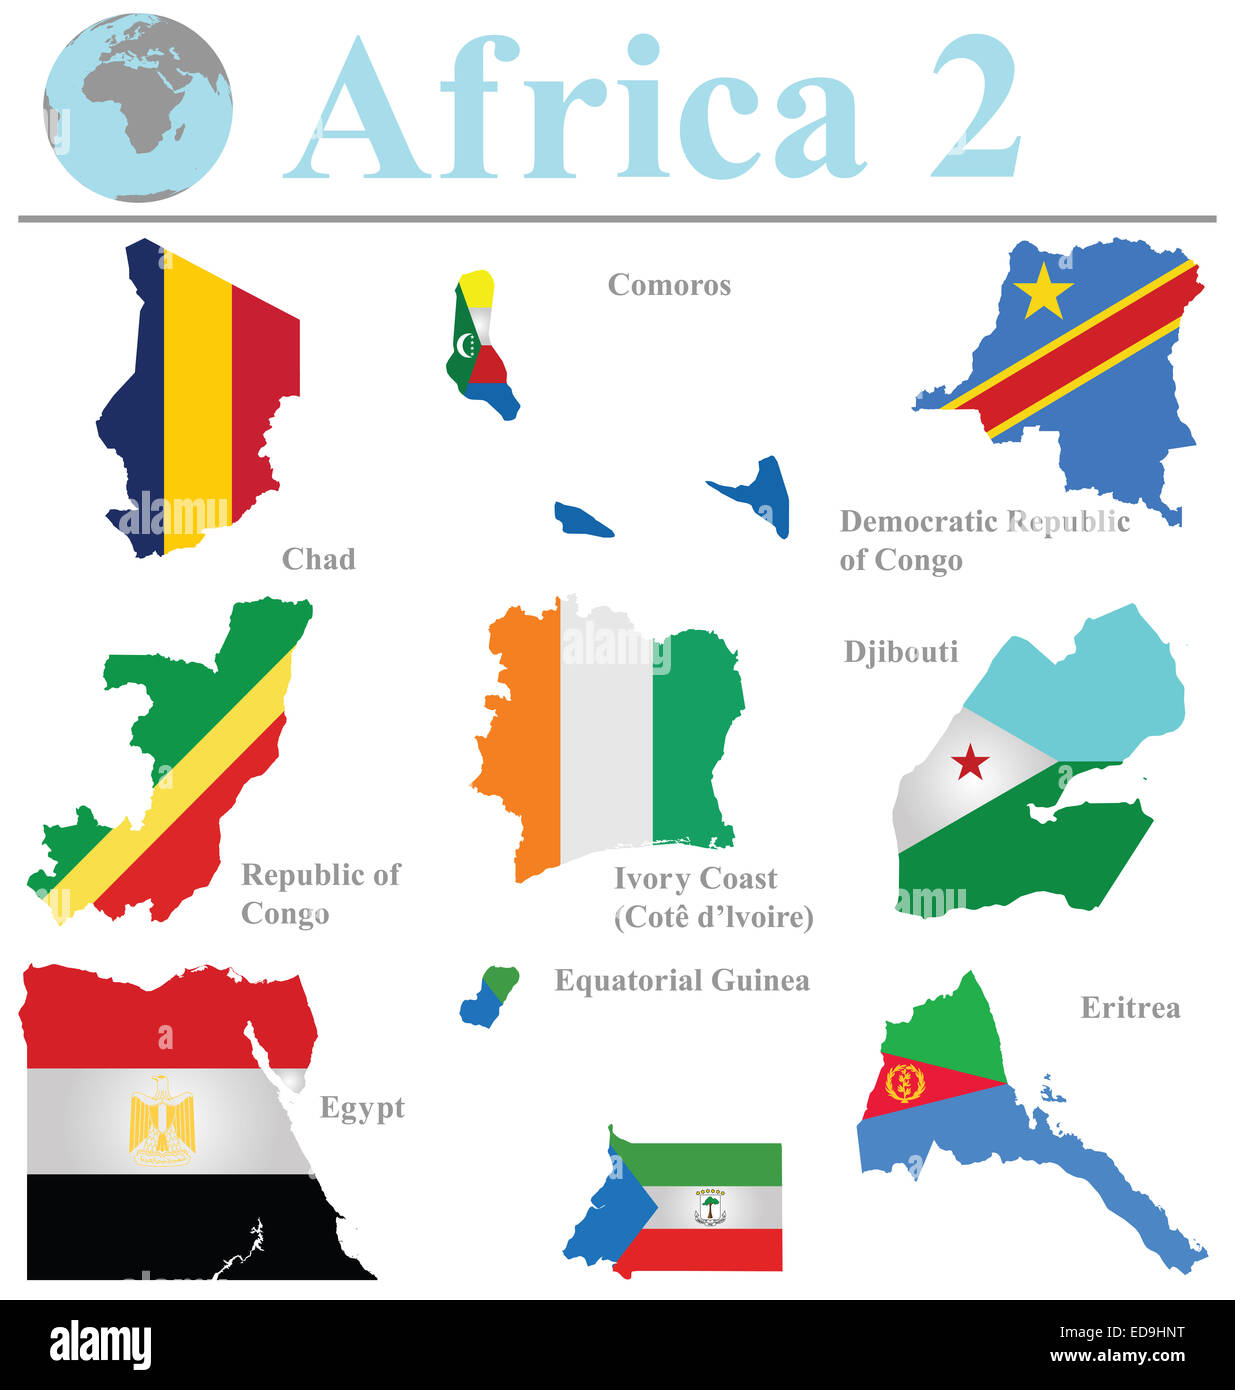 Flags of Africa collection 2 overlaid on outline map isolated on white background - Stock Image